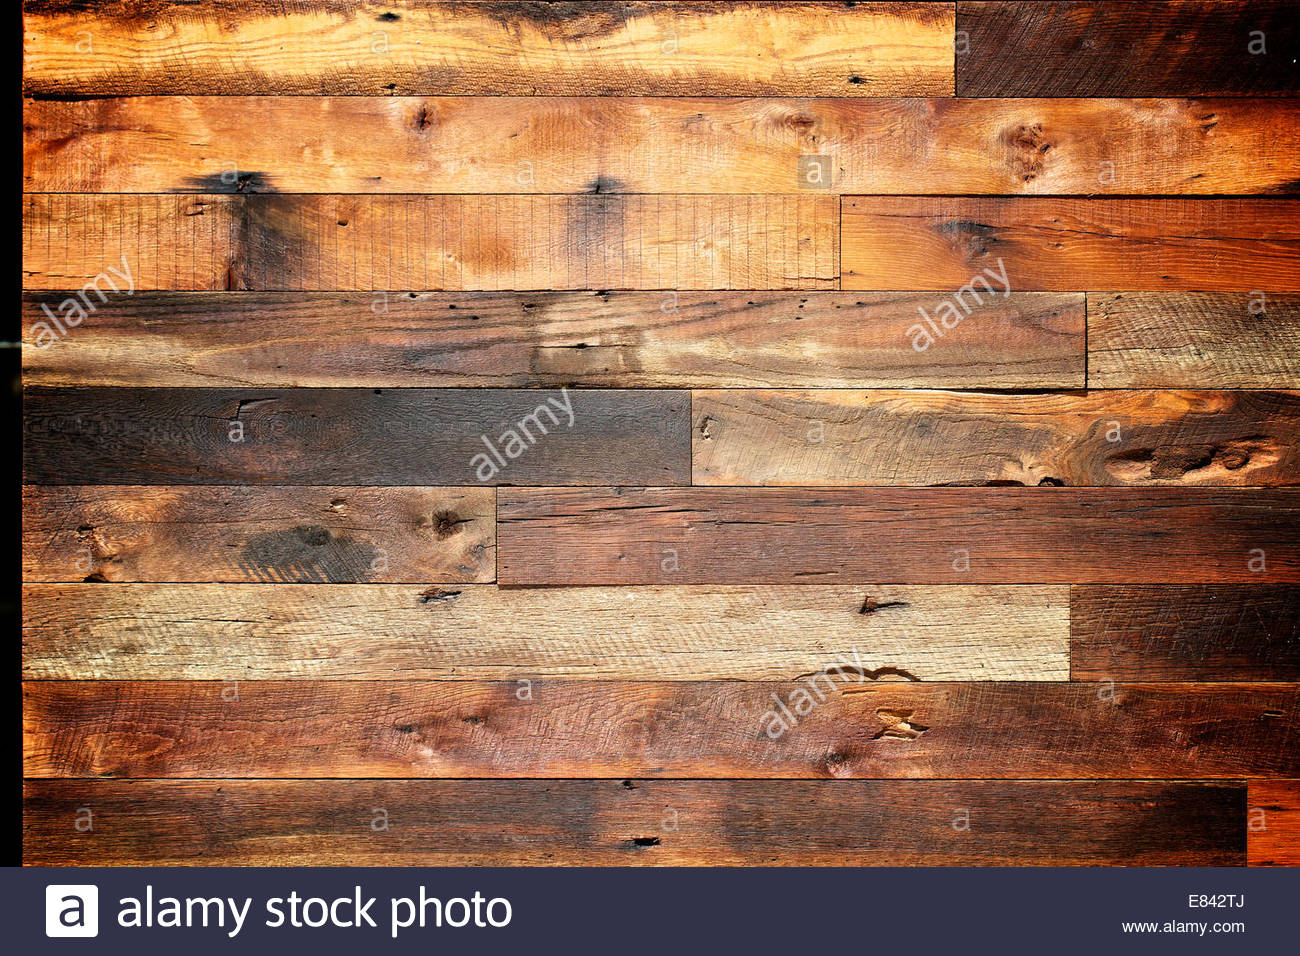 Shabby, reclaimed rustic weathered textured barn wood background wall - Stock Image